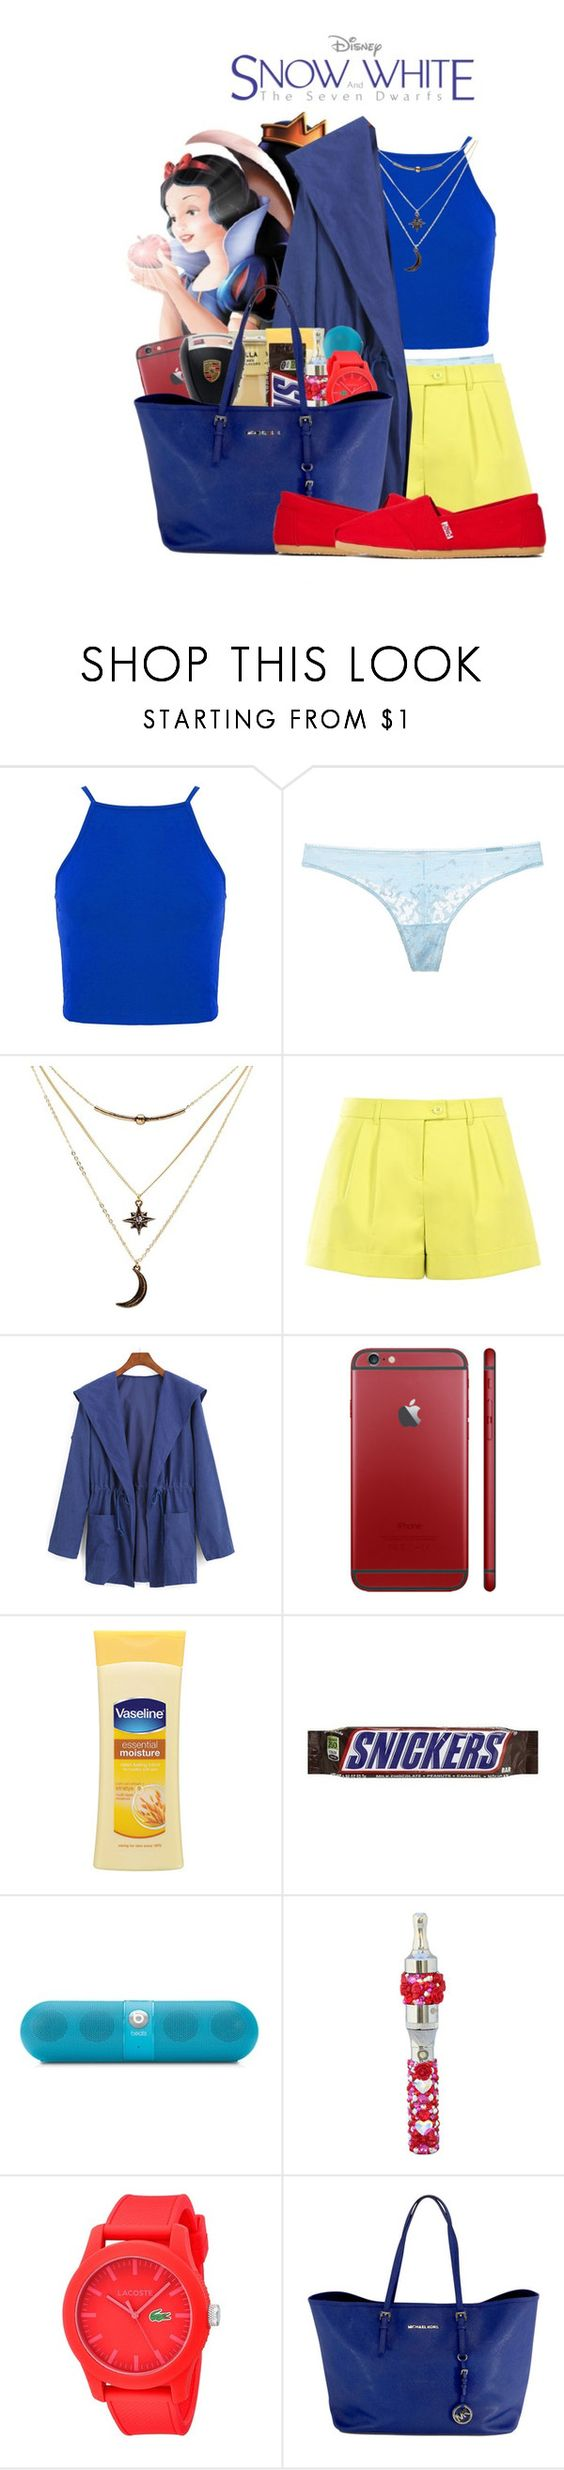 """""""The Modern Snow White"""" by unknownbaby ❤ liked on Polyvore featuring Calvin Klein Underwear, Charlotte Russe, Boutique Moschino, WithChic, Beats by Dr. Dre, Lacoste, Michael Kors, TOMS, modern and women's clothing"""